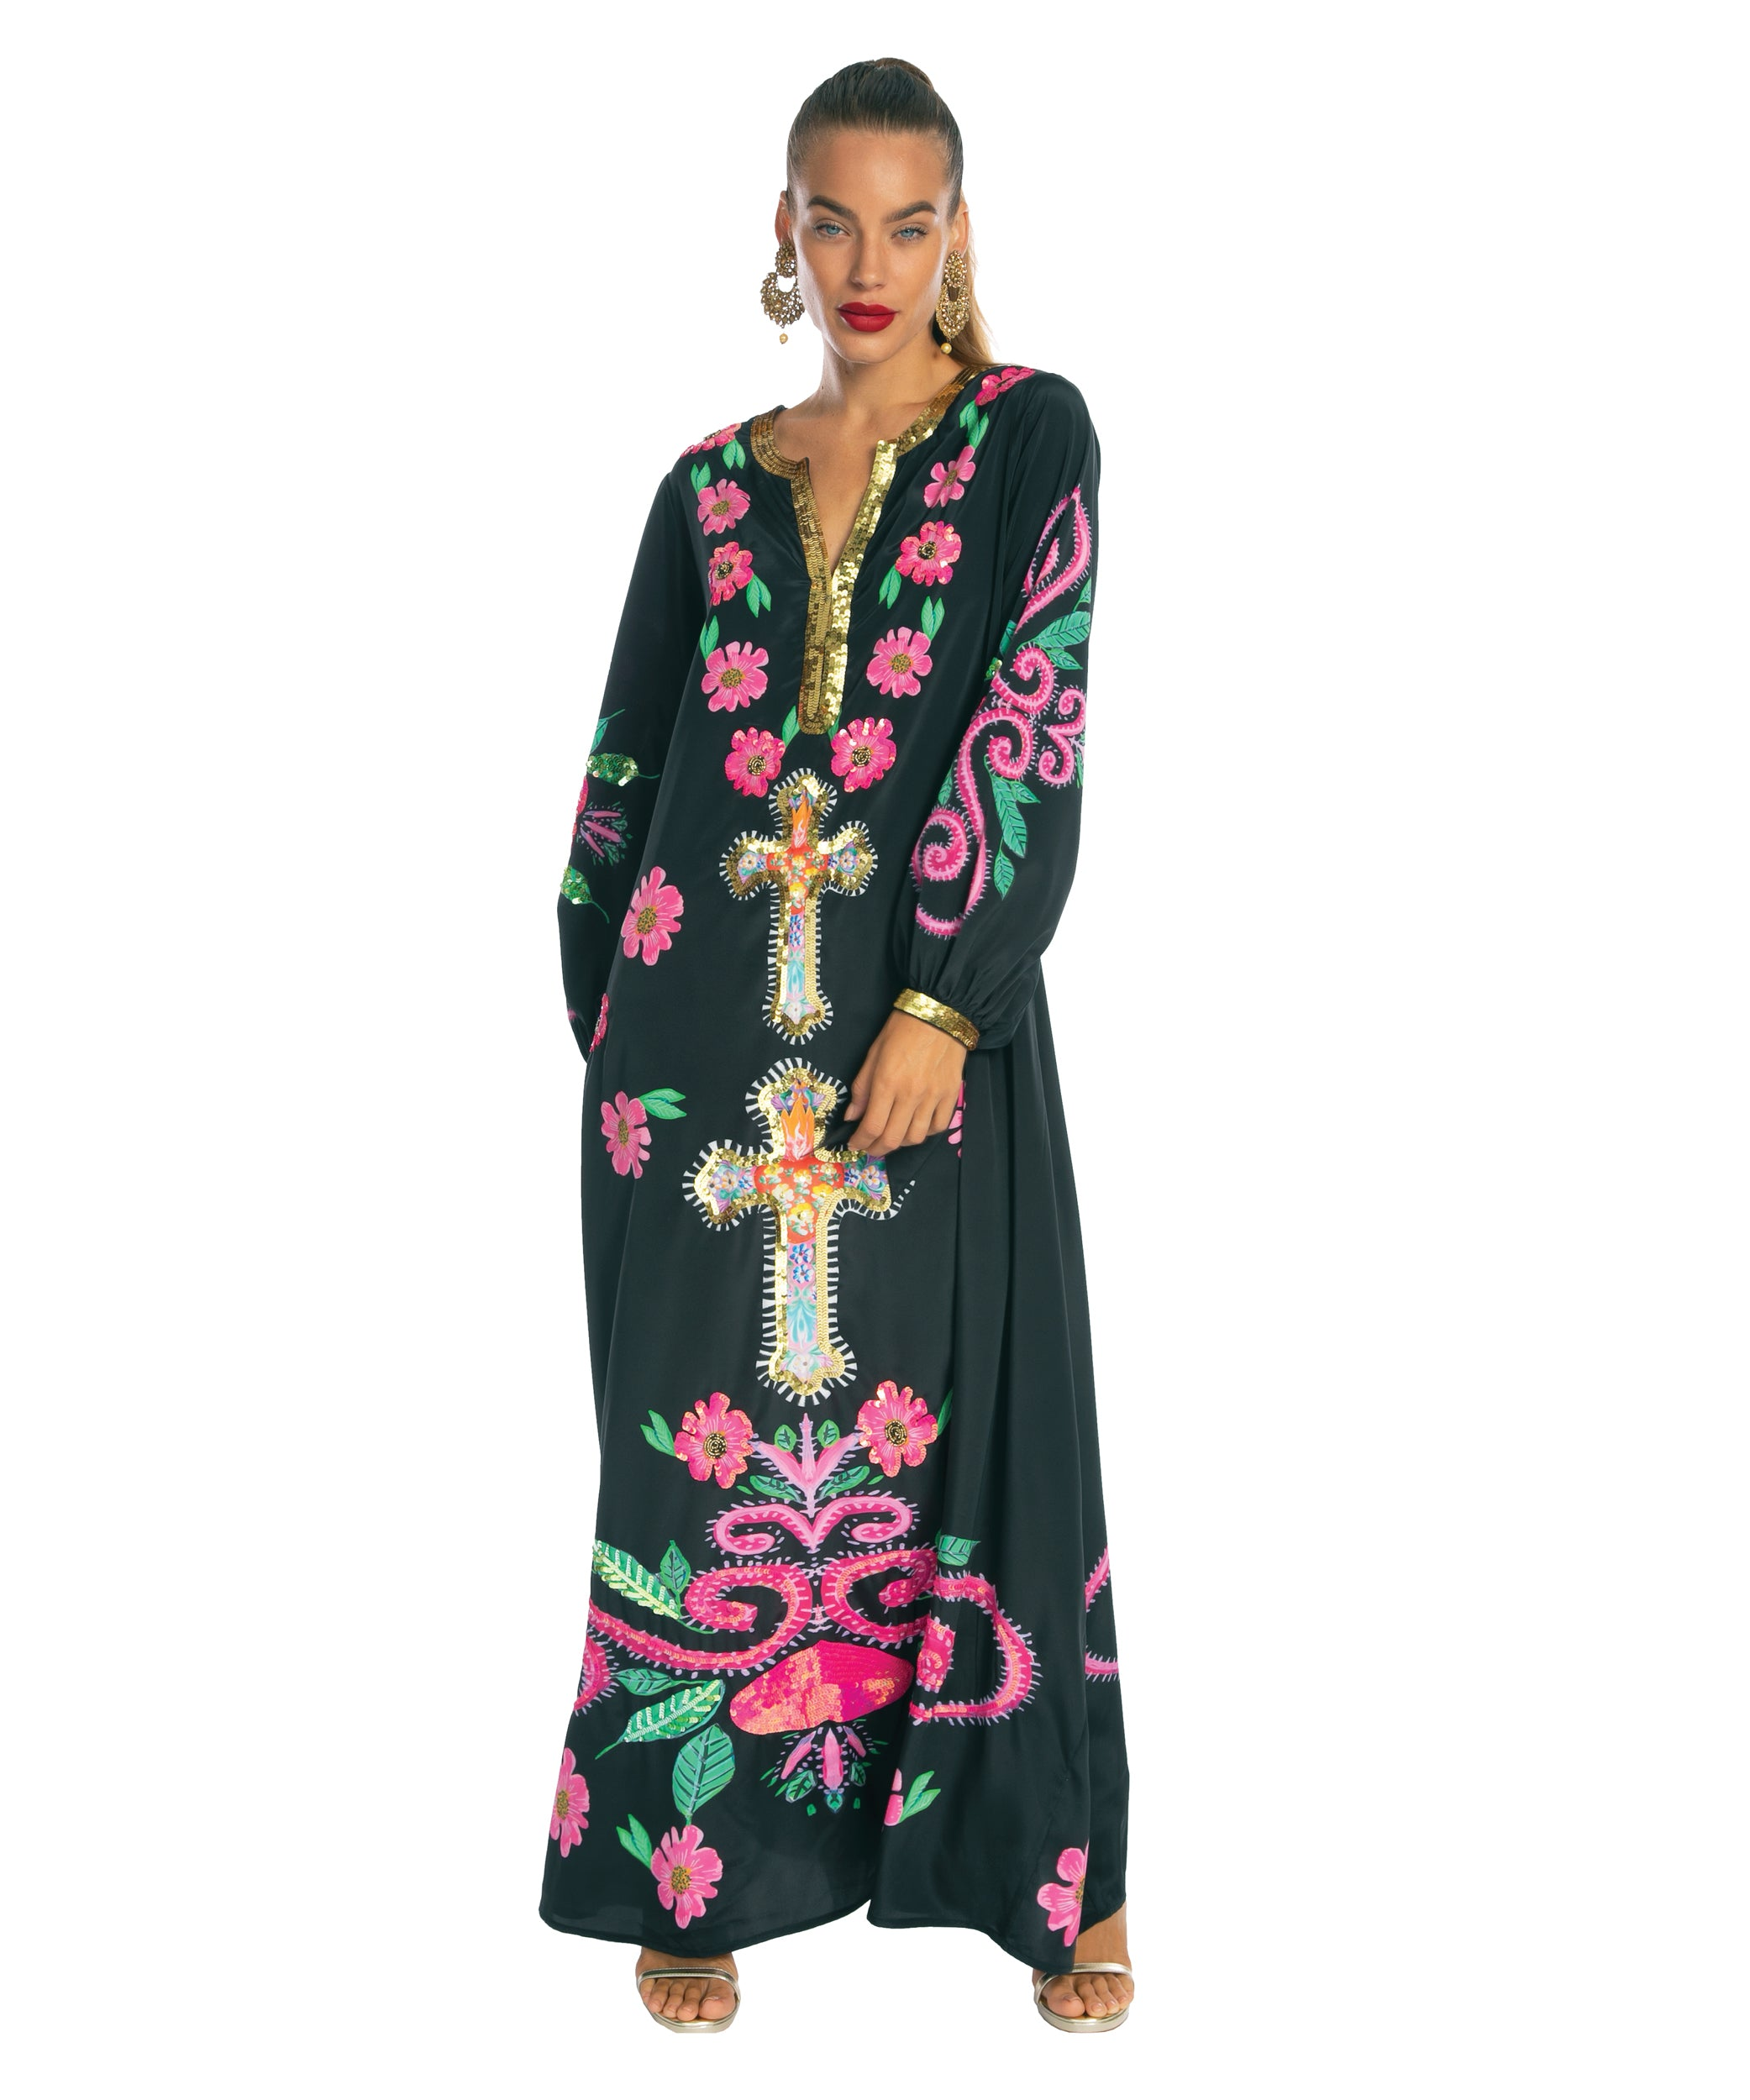 The Mexican Cross Kaftan by Bonita Kaftans